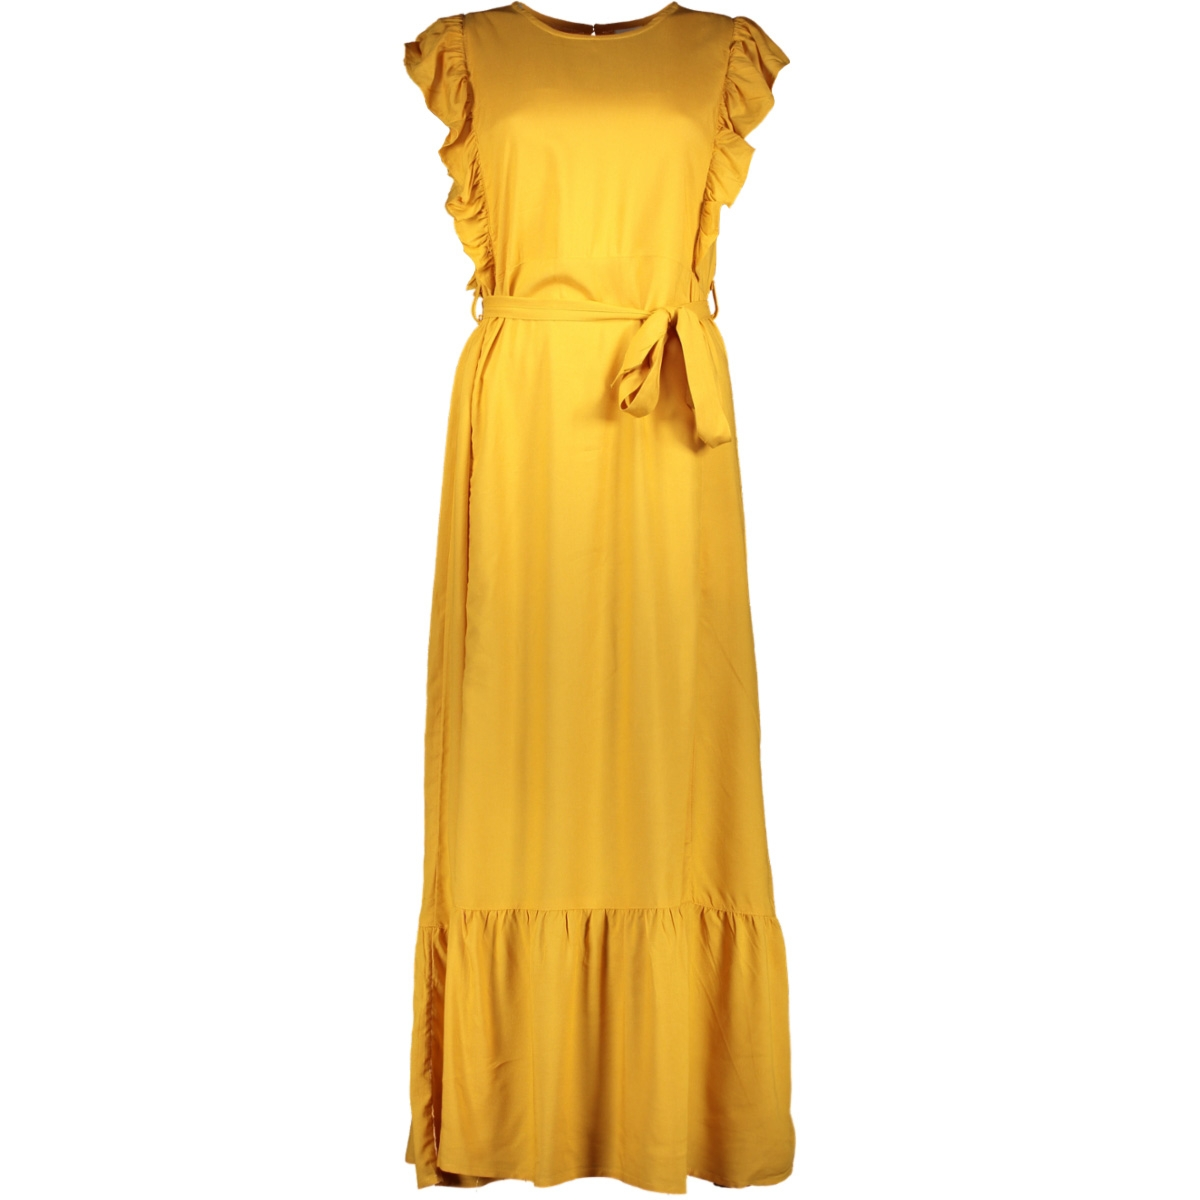 jdyaura s/l flounce dress wvn exp 15187734 jacqueline de yong jurk golden yellow